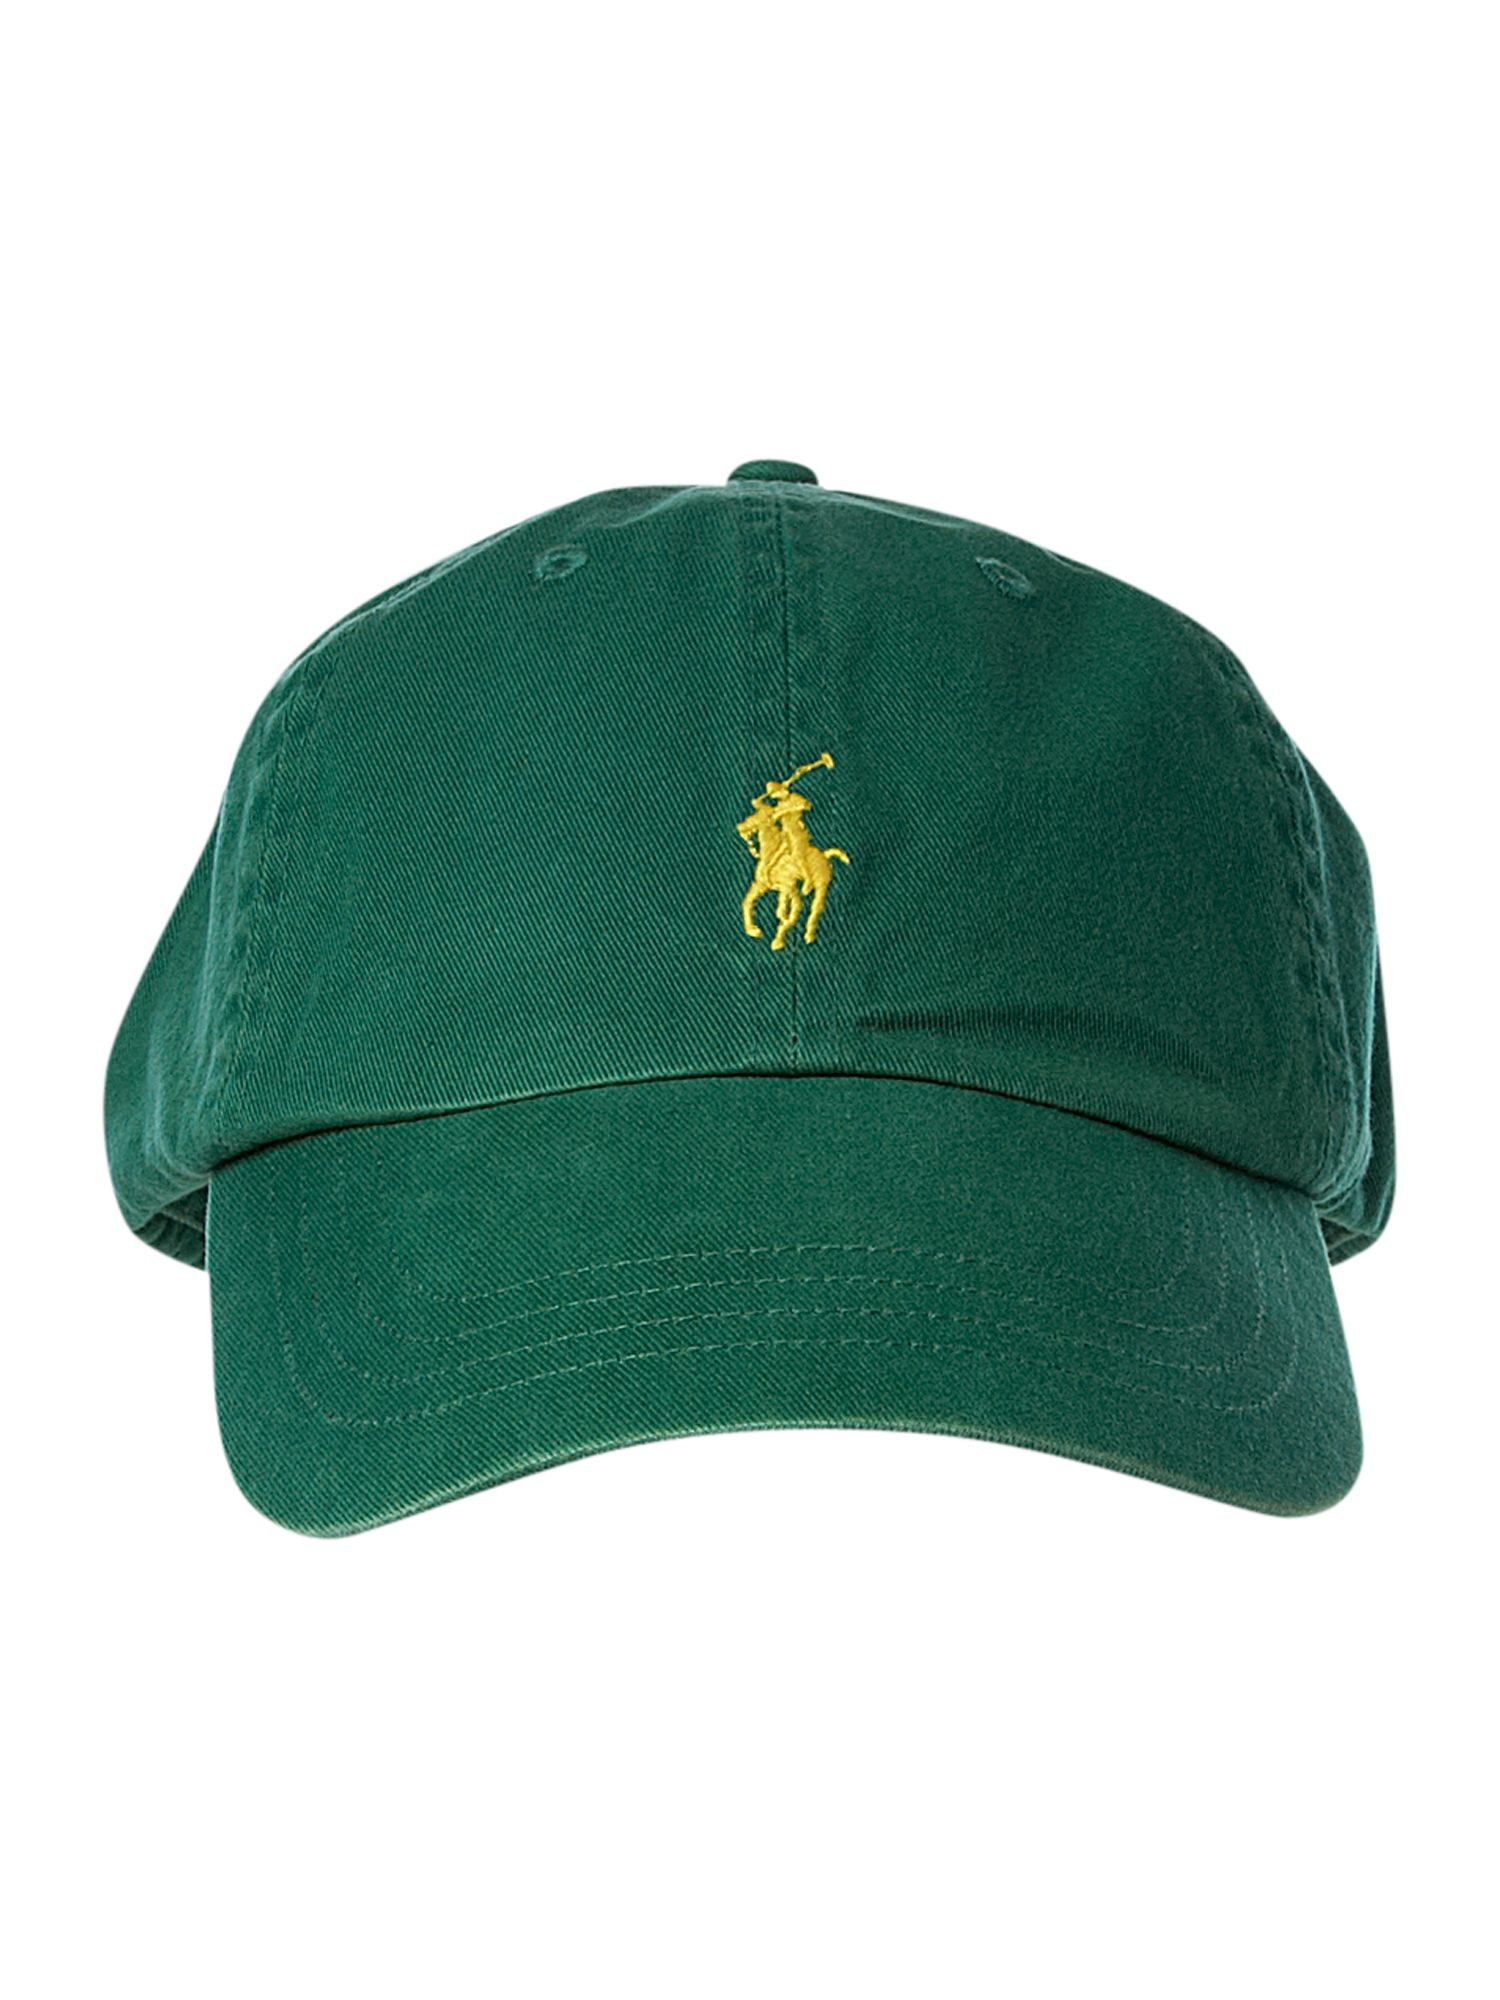 polo ralph lauren baseball cap in green for men lyst. Black Bedroom Furniture Sets. Home Design Ideas